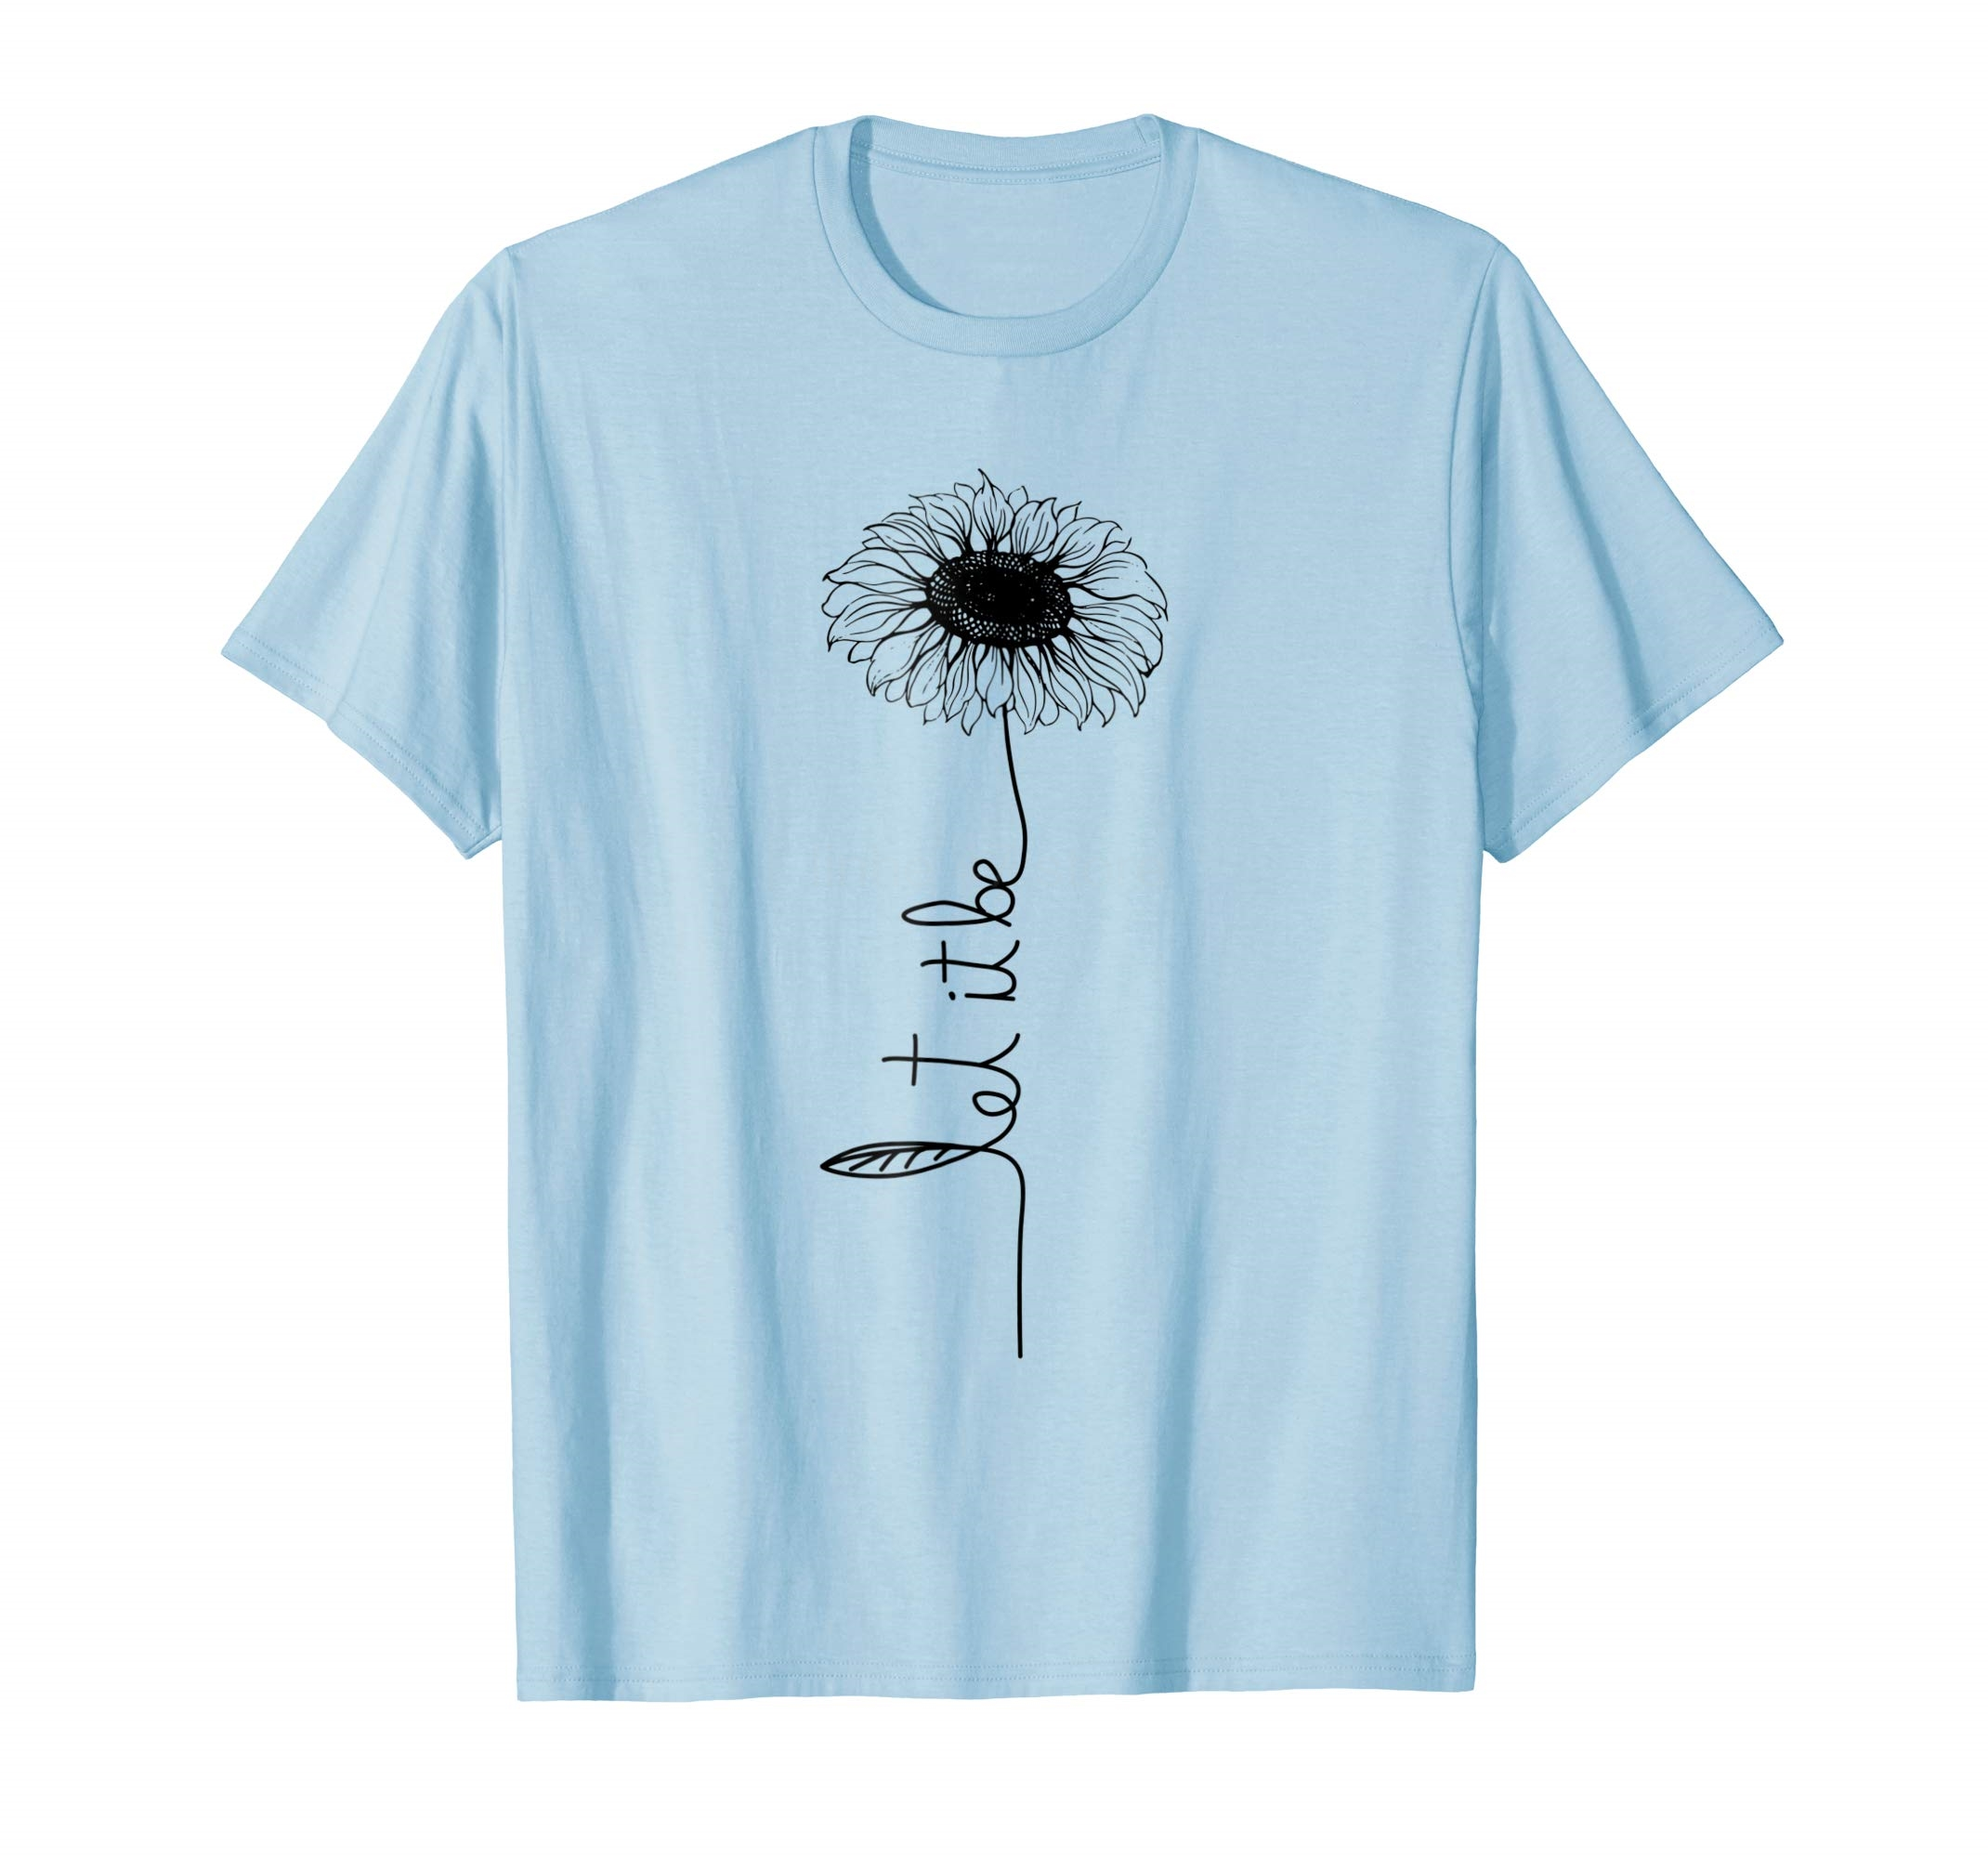 Let it be Sunflower Hippie Gypsy Soul Lover Vintage Shirt Fun T-Shirt Men's Print Casual 100% Cotton T-Shirt Popular